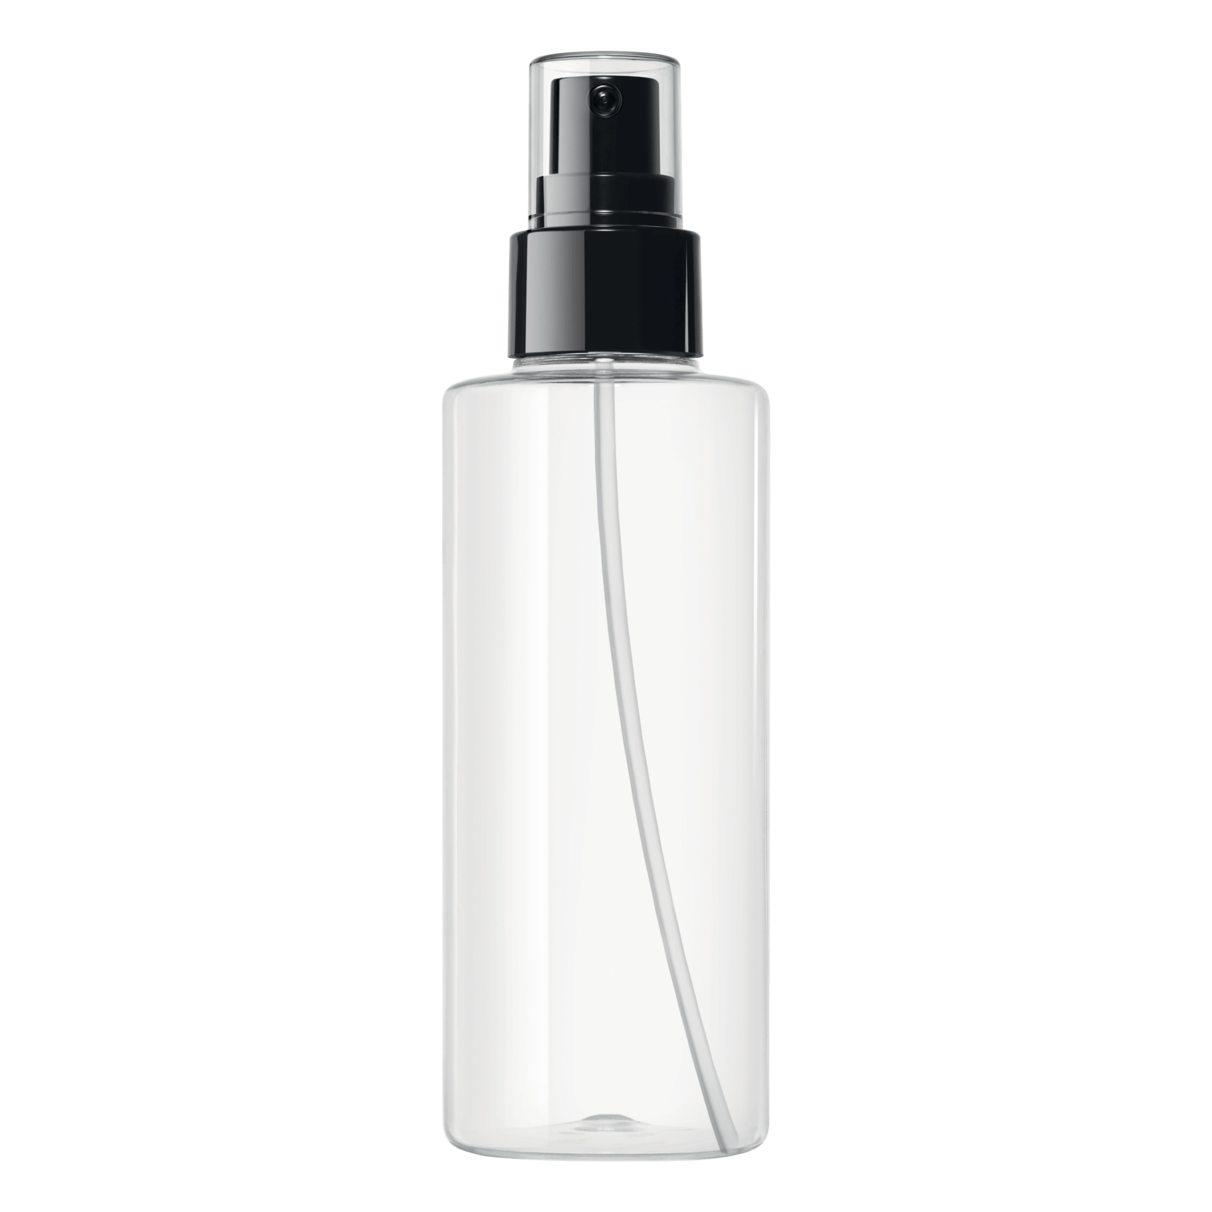 Spray bottle png. Empty ml containers make